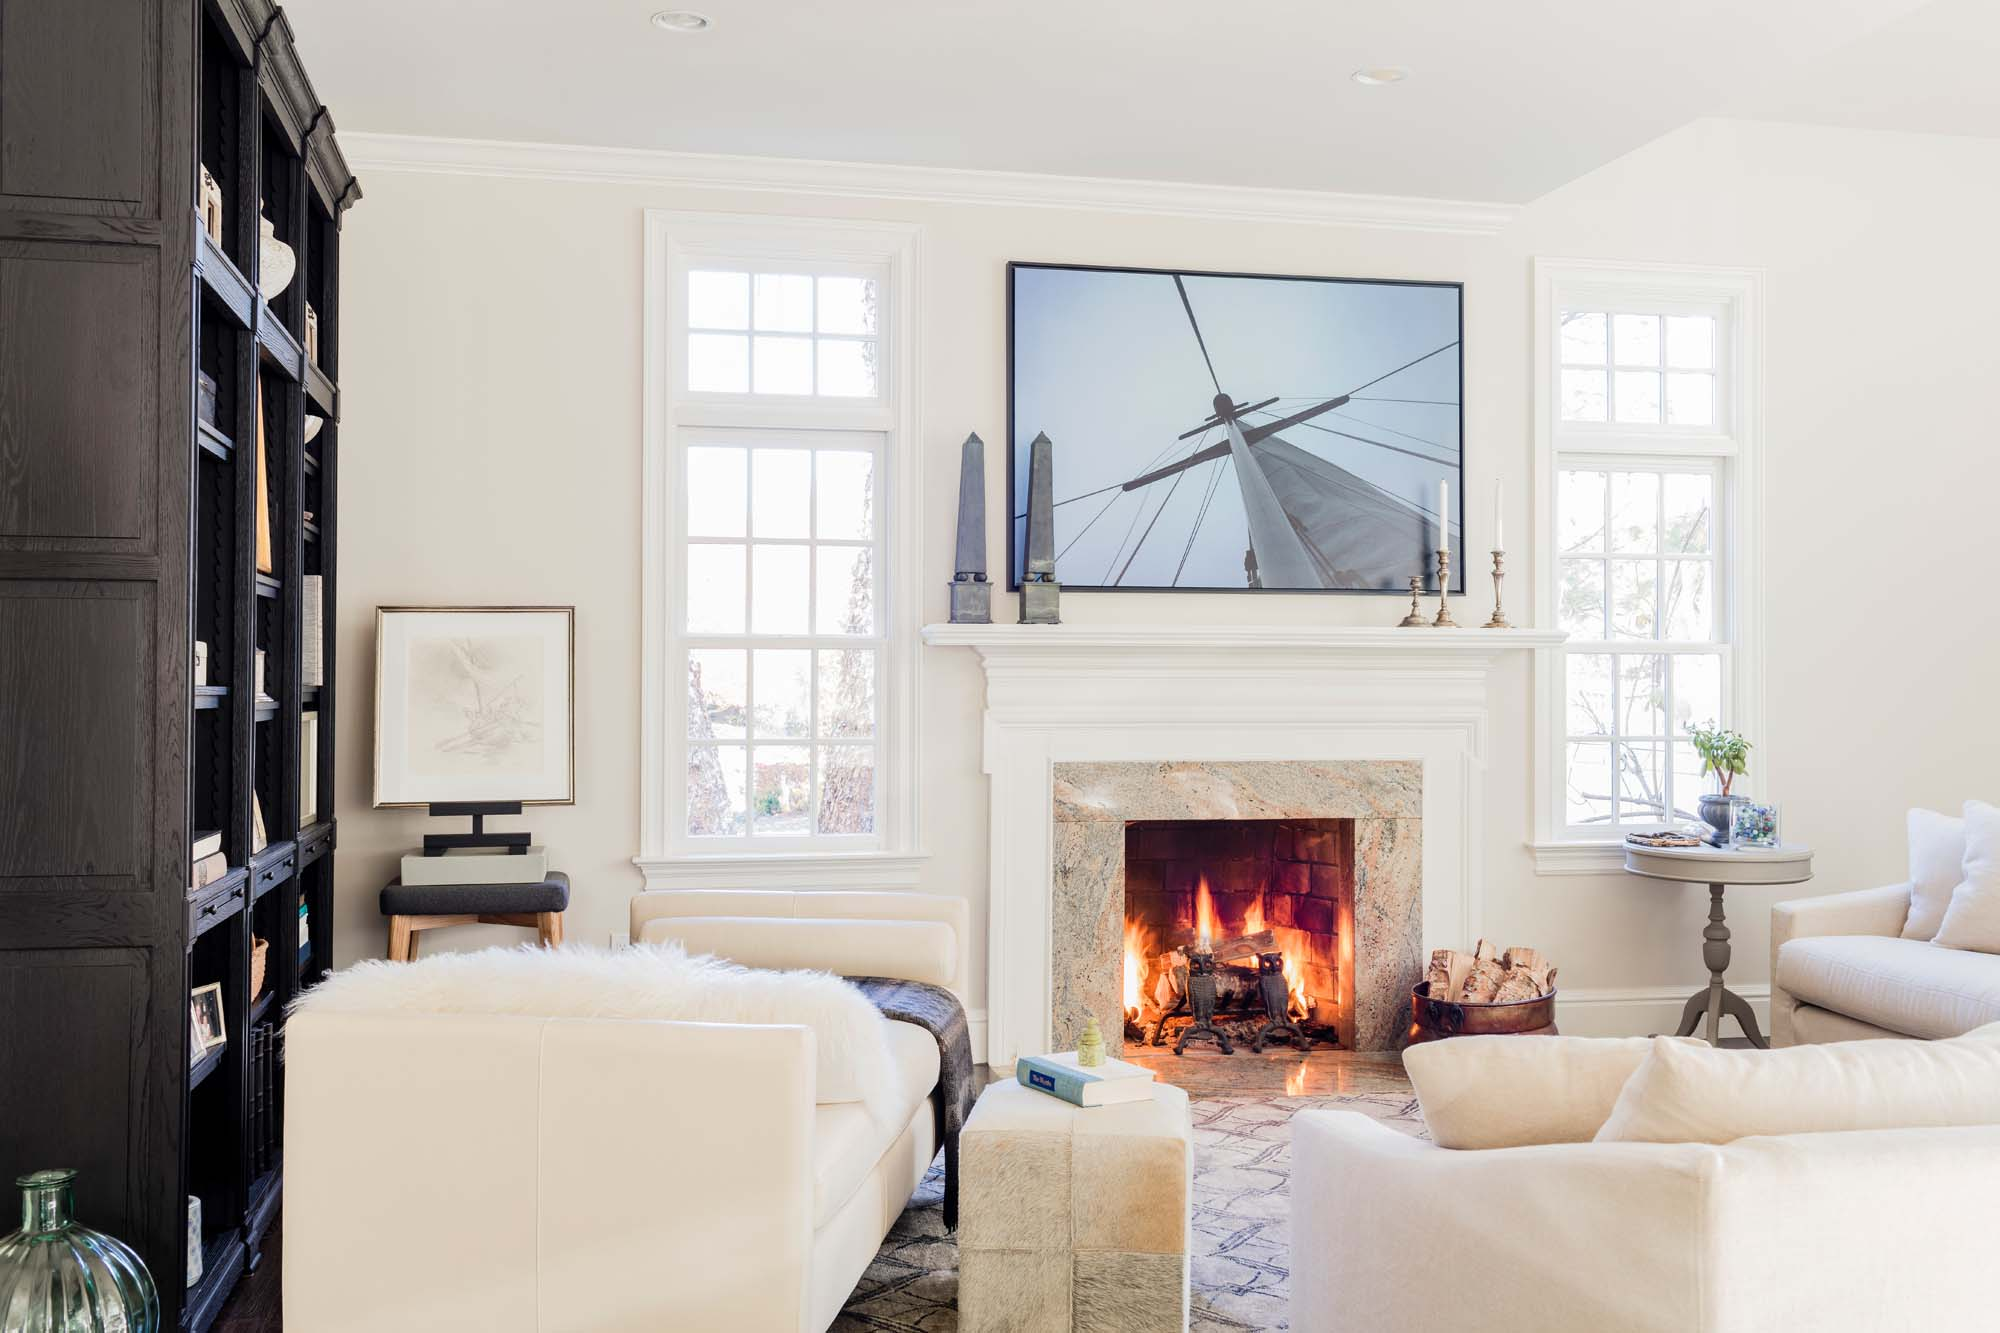 Living room with white sofa, white painted walls, white window frame and a wooden shelves — day bed, verellen, verellen sectional, duke, sectional, room and board day bed, original artwork, art, photograph, nautical, fireplace, obelisk, rh, restoration hardware, black oak, black wood, white dove, benjamin moore, winds breath, wind's breath